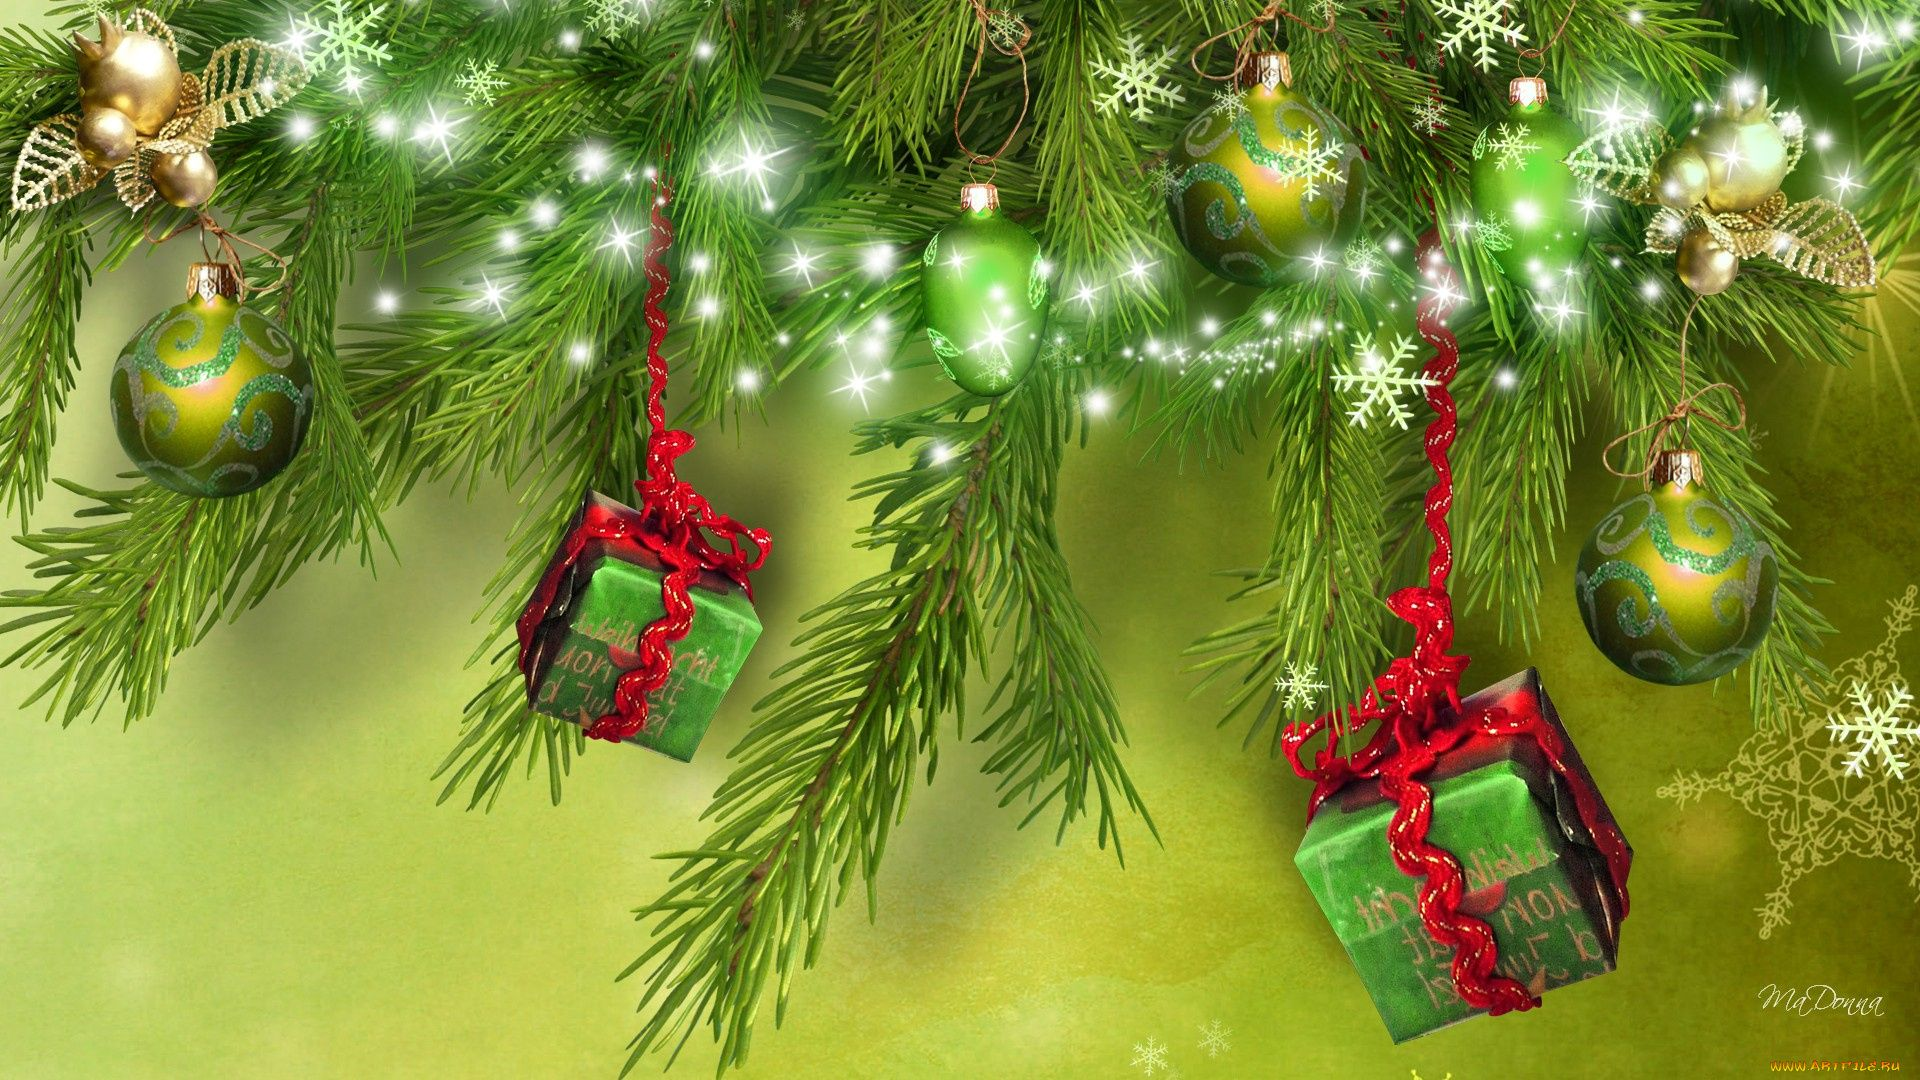 Green Christmas hd wallpaper download